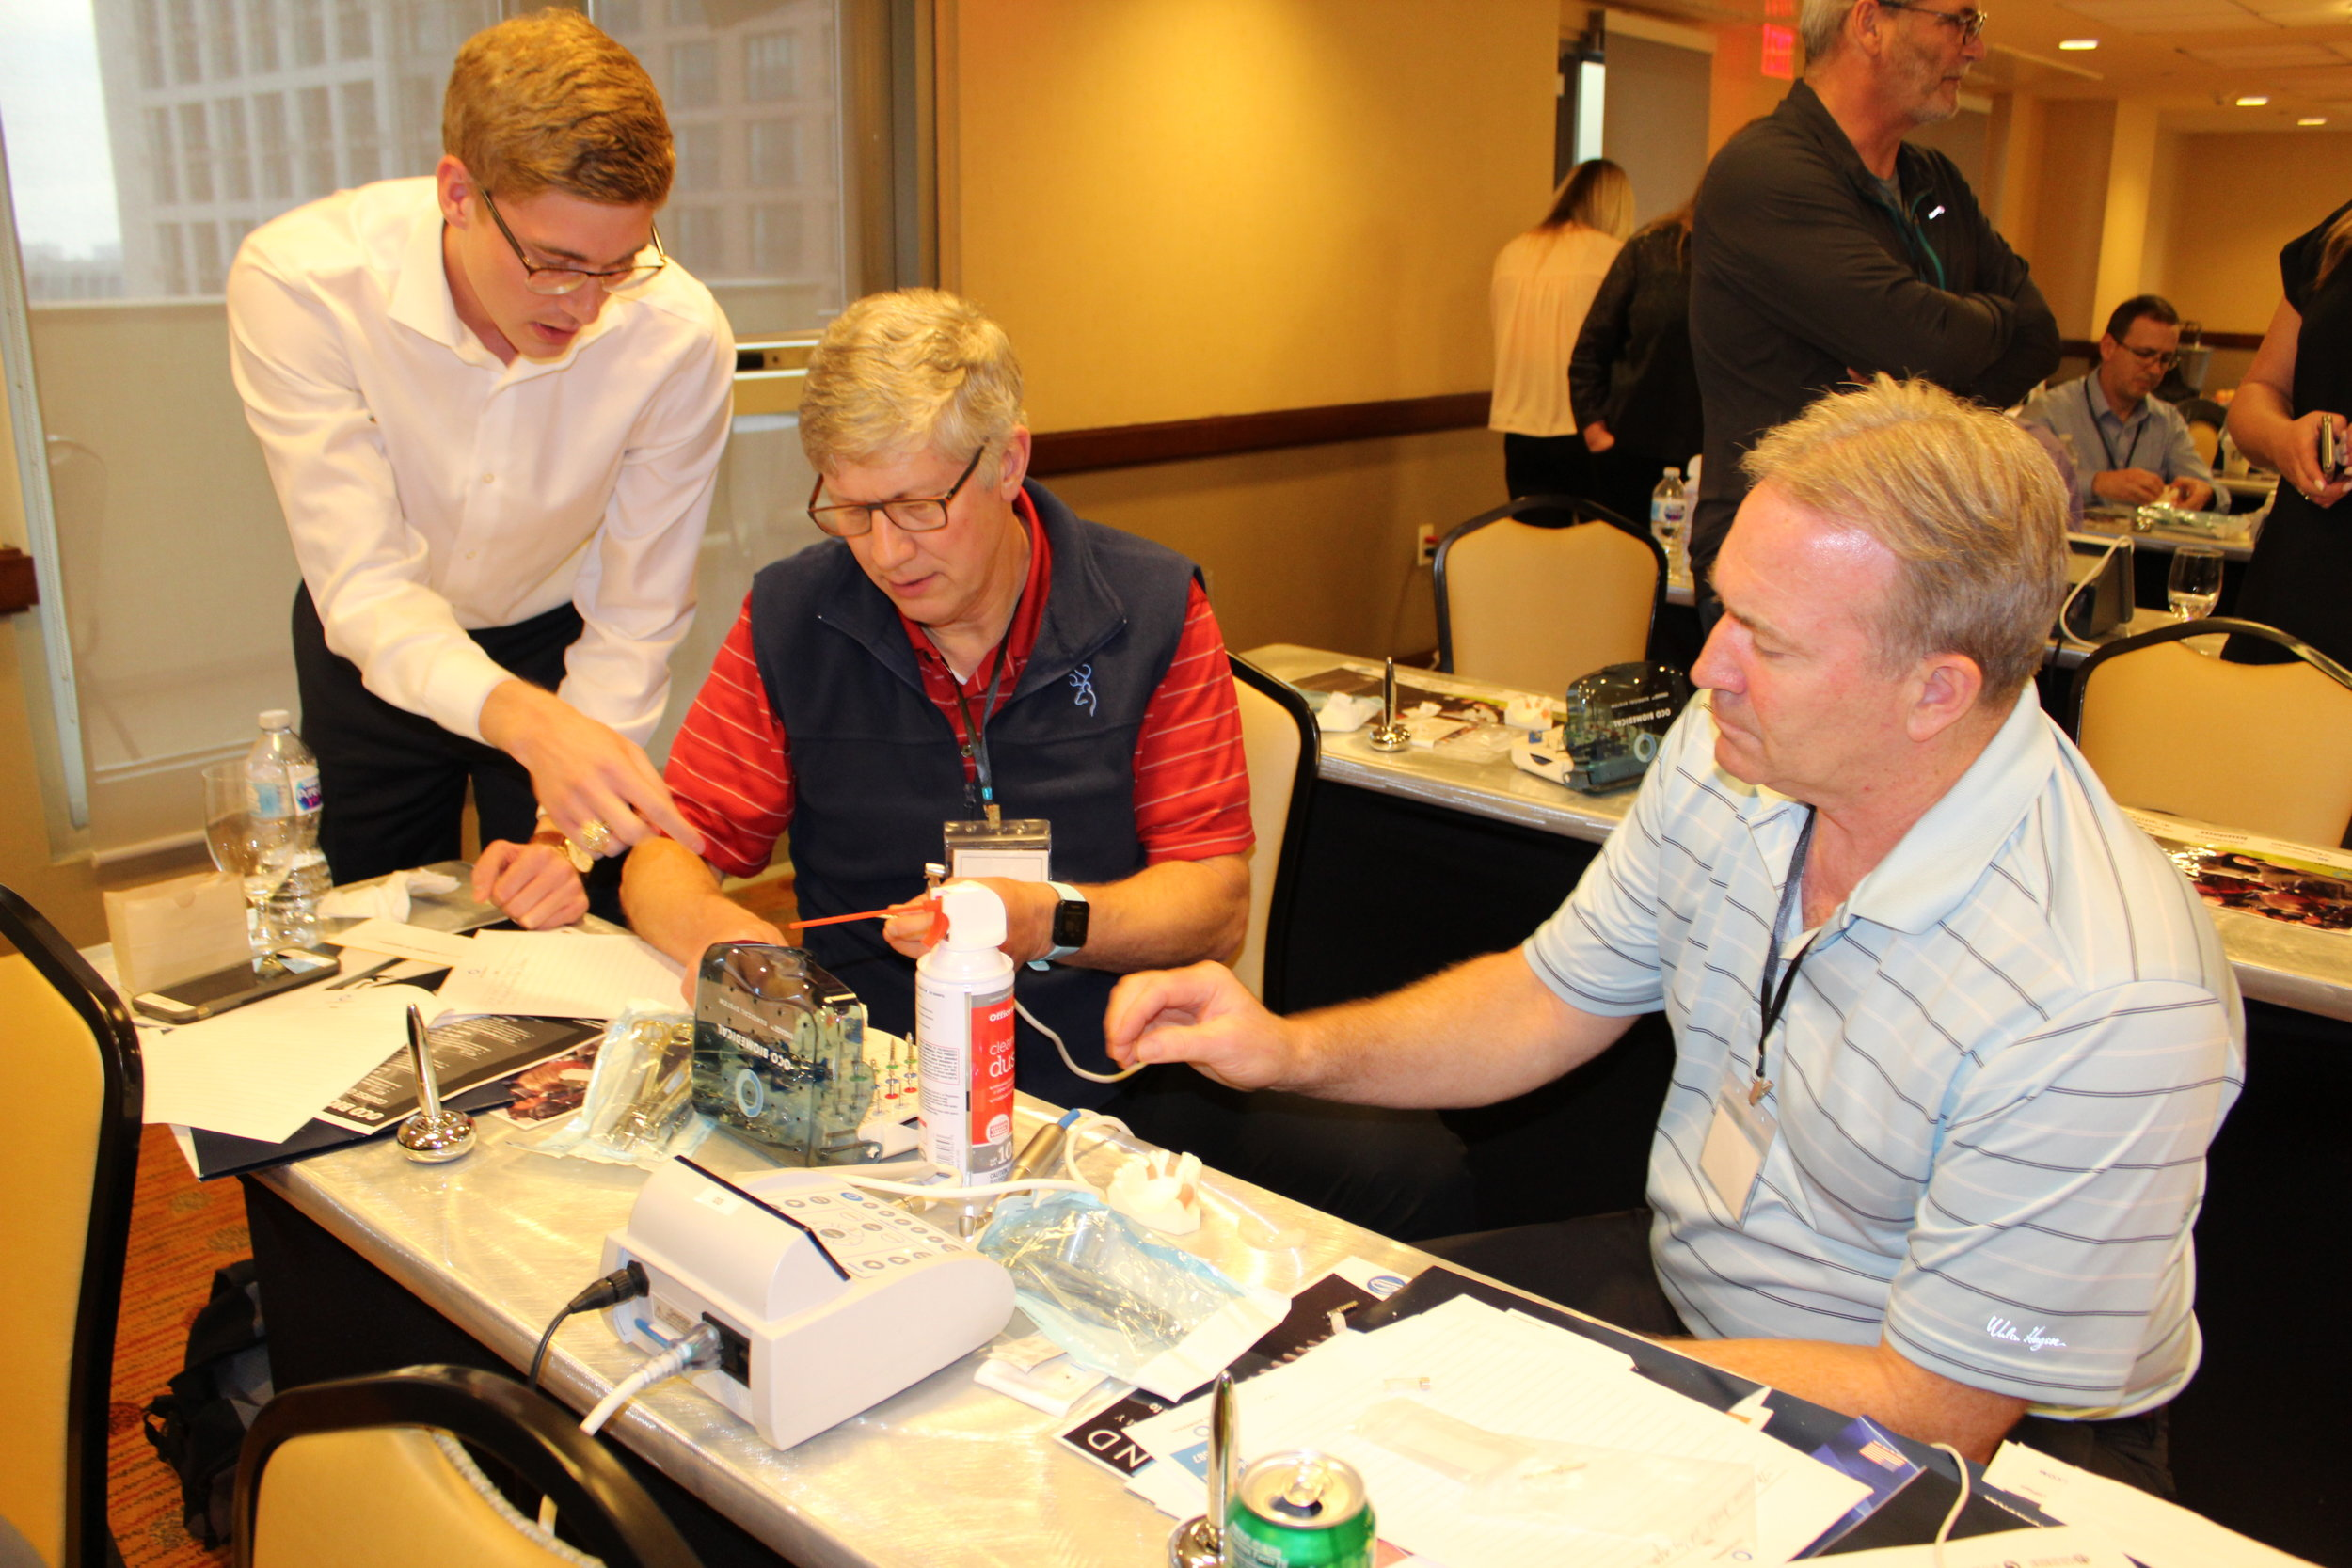 OCO Biomedical sales representative helping out during the hands-on workshop